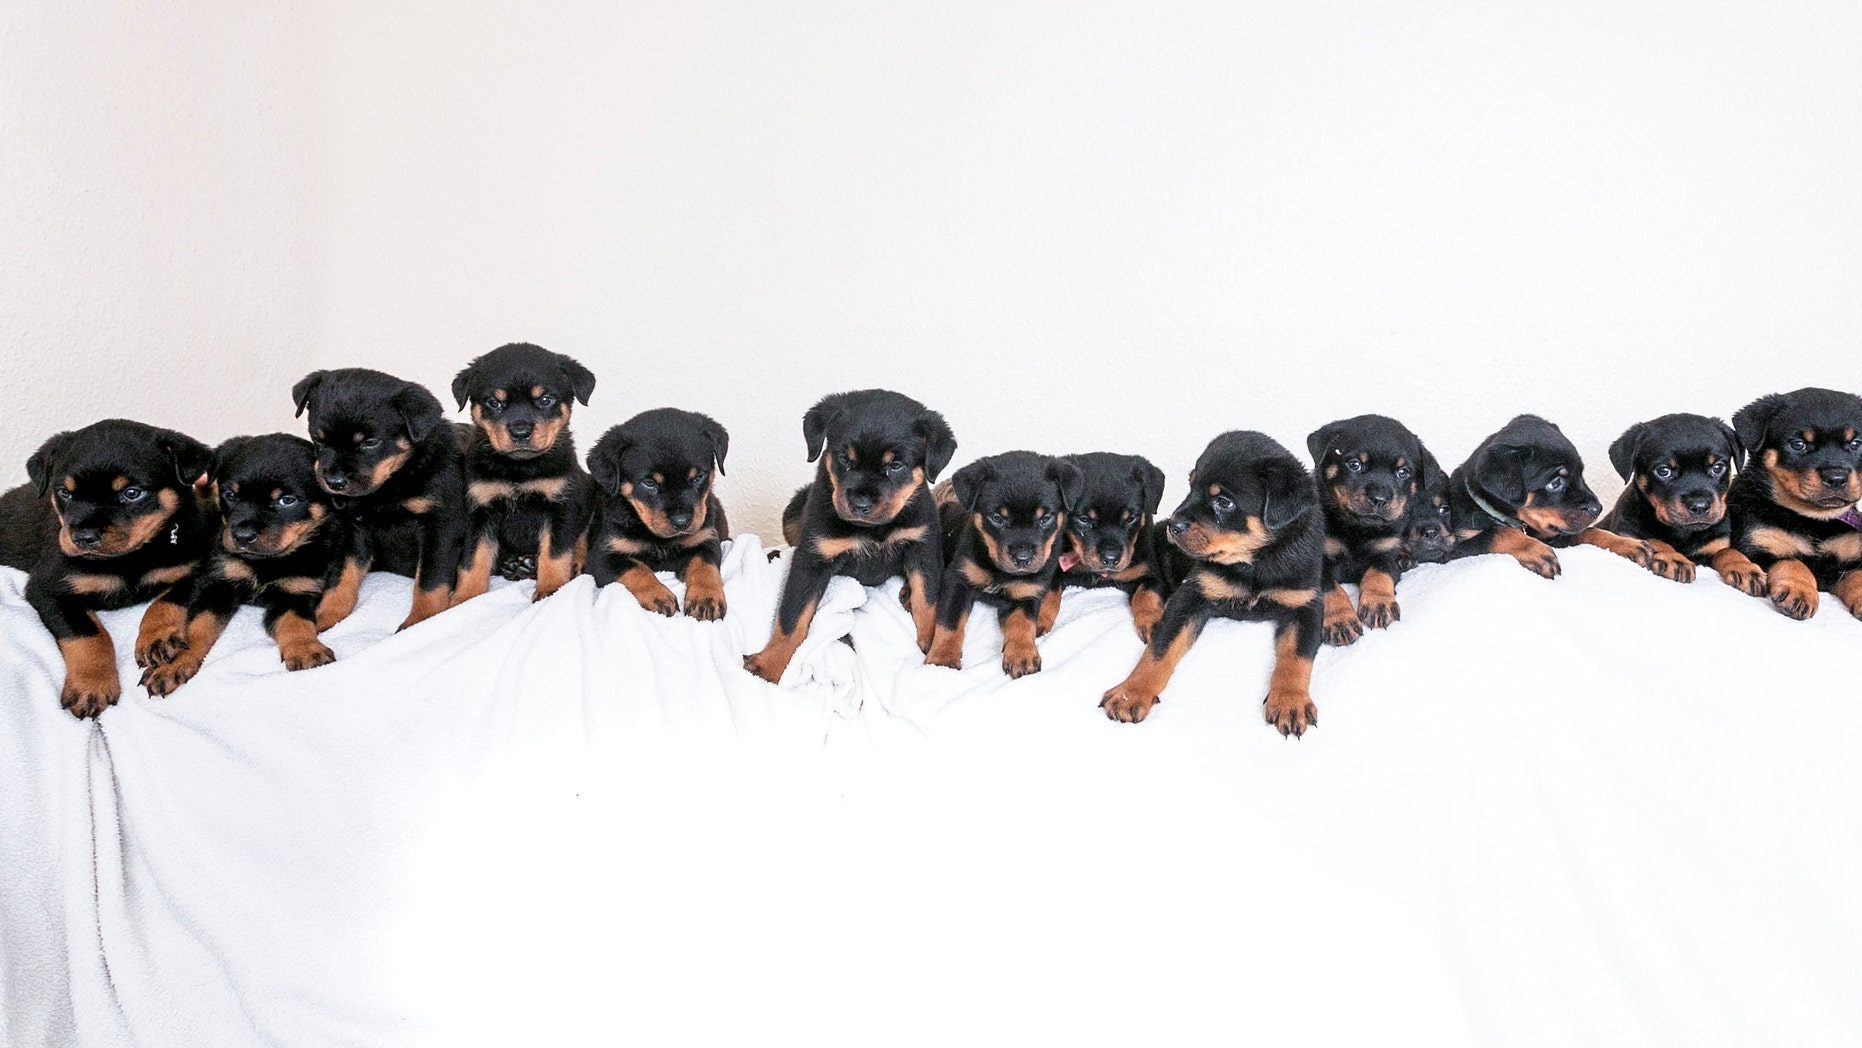 Corporal Mark Marshall's happy litter of sixteen puppy Rottweilers at his home in Preston, Lancashire.